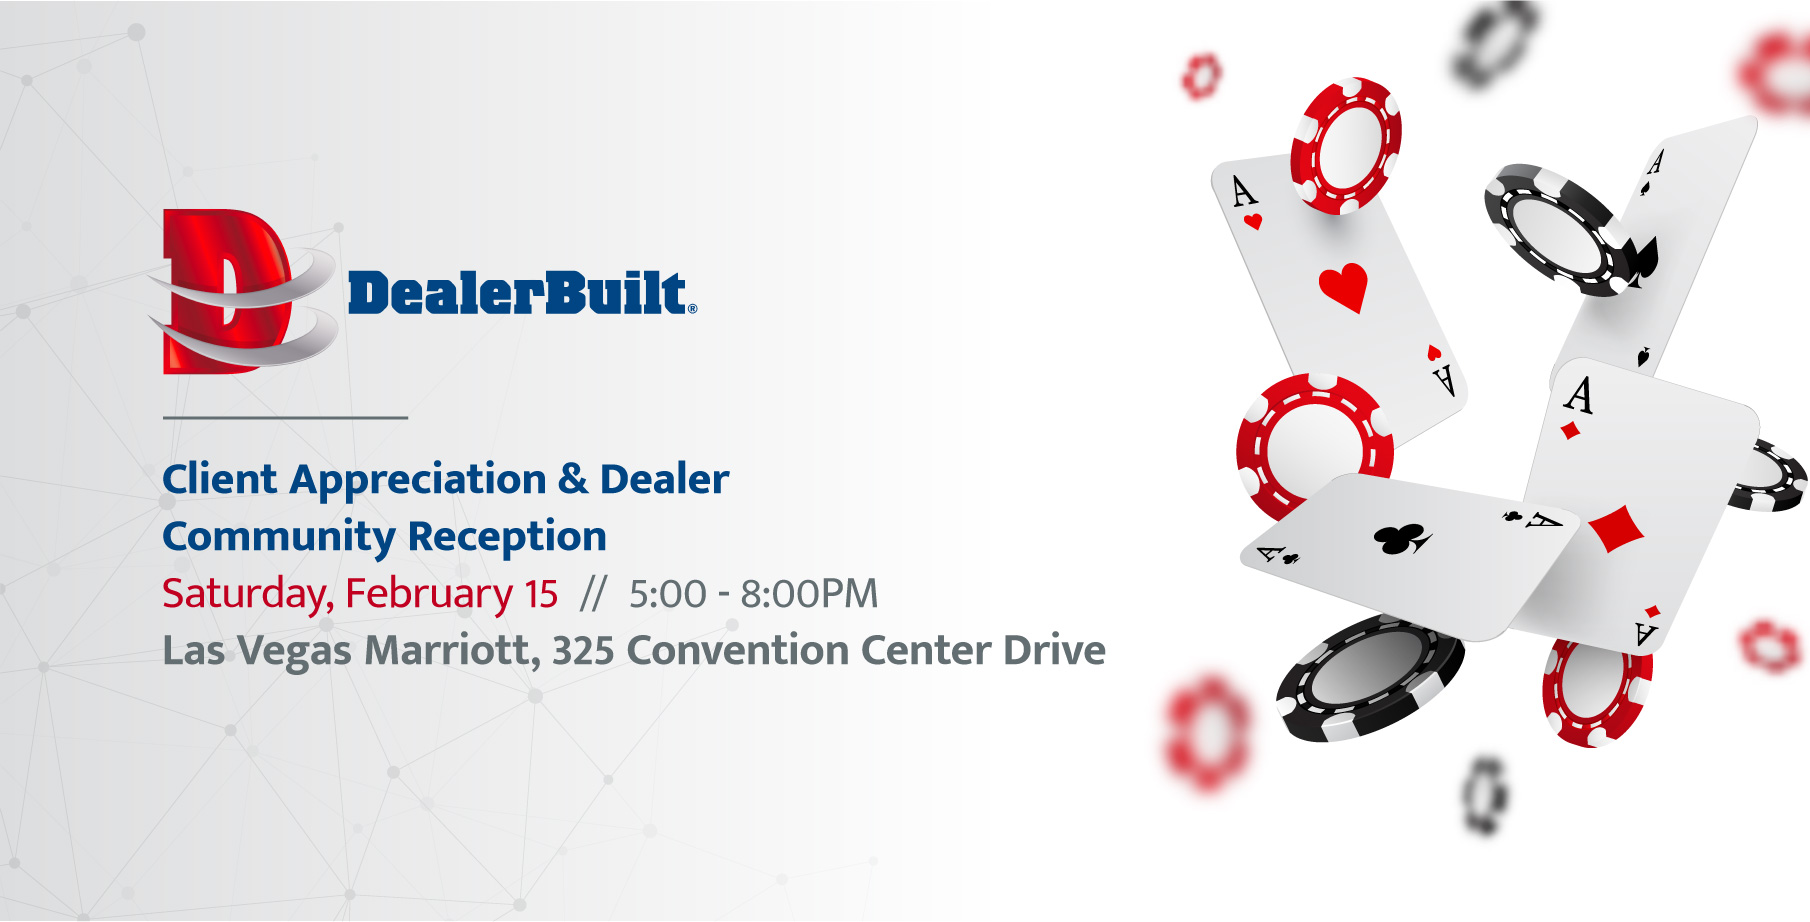 DealerBuilt Customer Appreciation & Dealer Community Reception